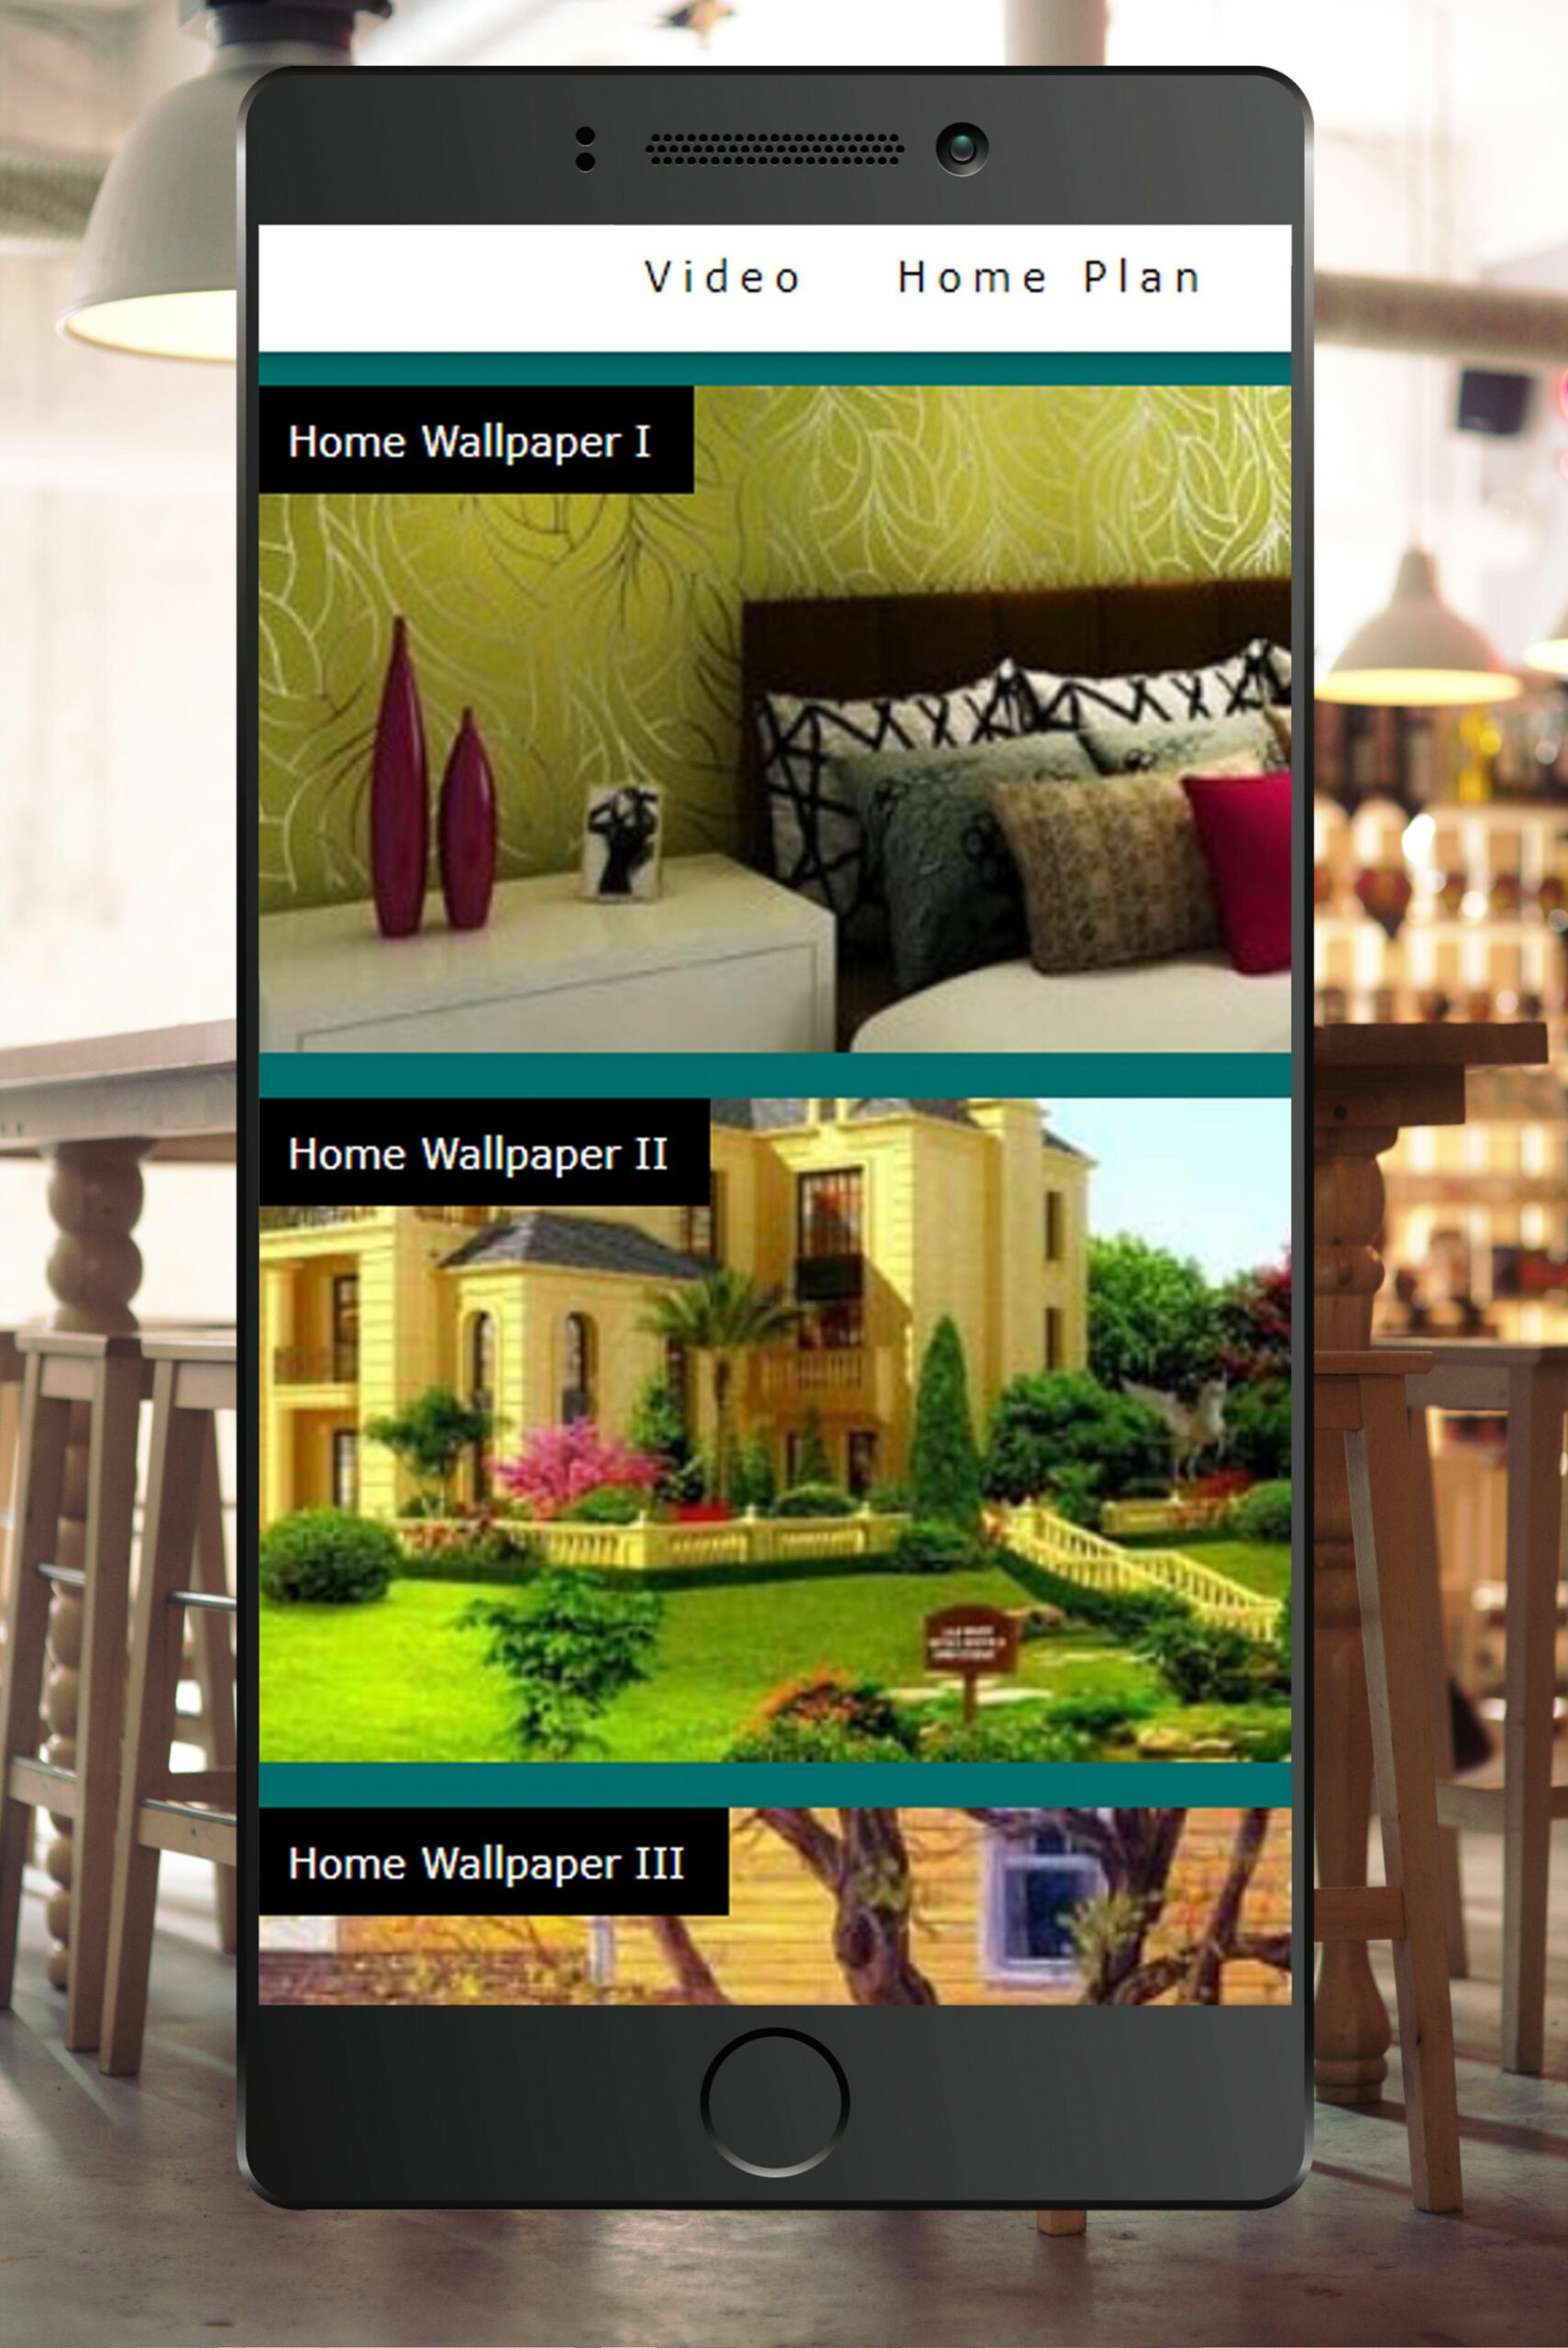 DIY Home: Design and Decoration Ideas for Android - APK Download - diy home decor video download